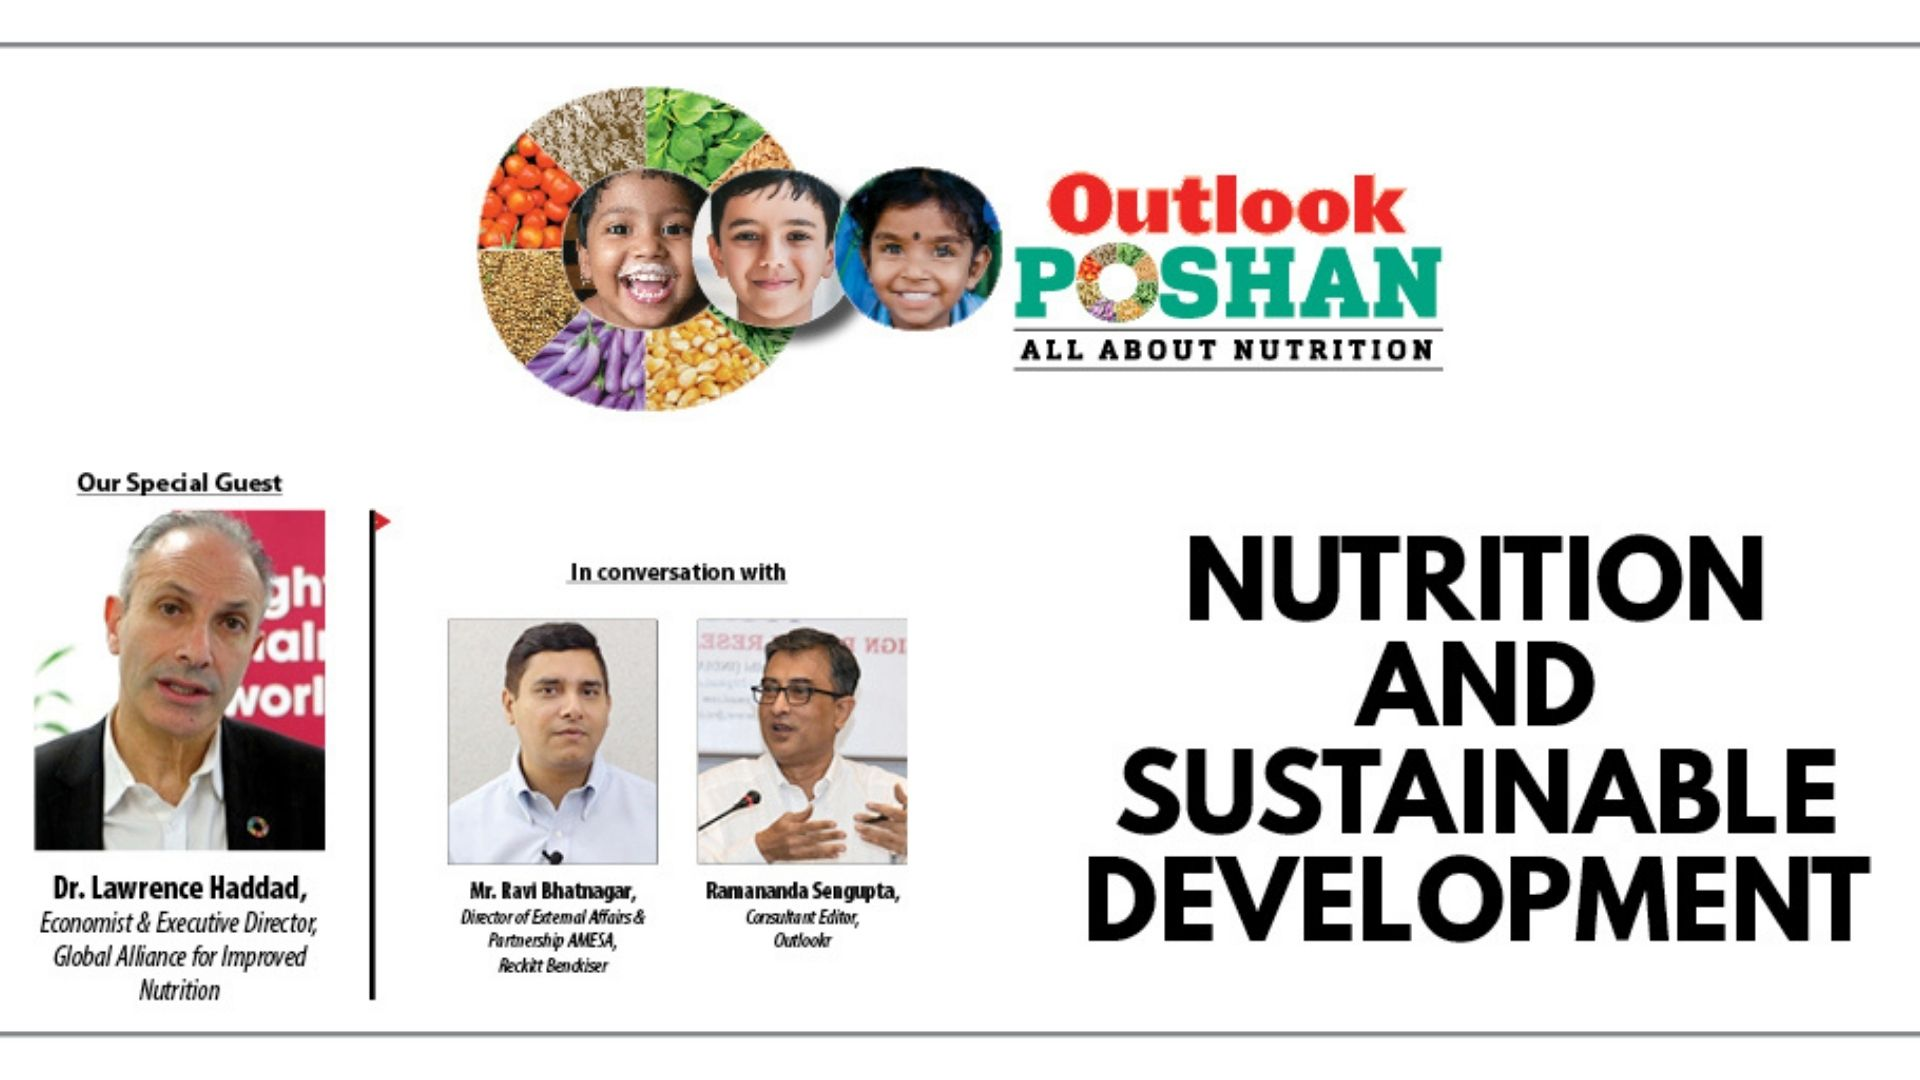 How Nutrition And Sustainable Development Are Linked